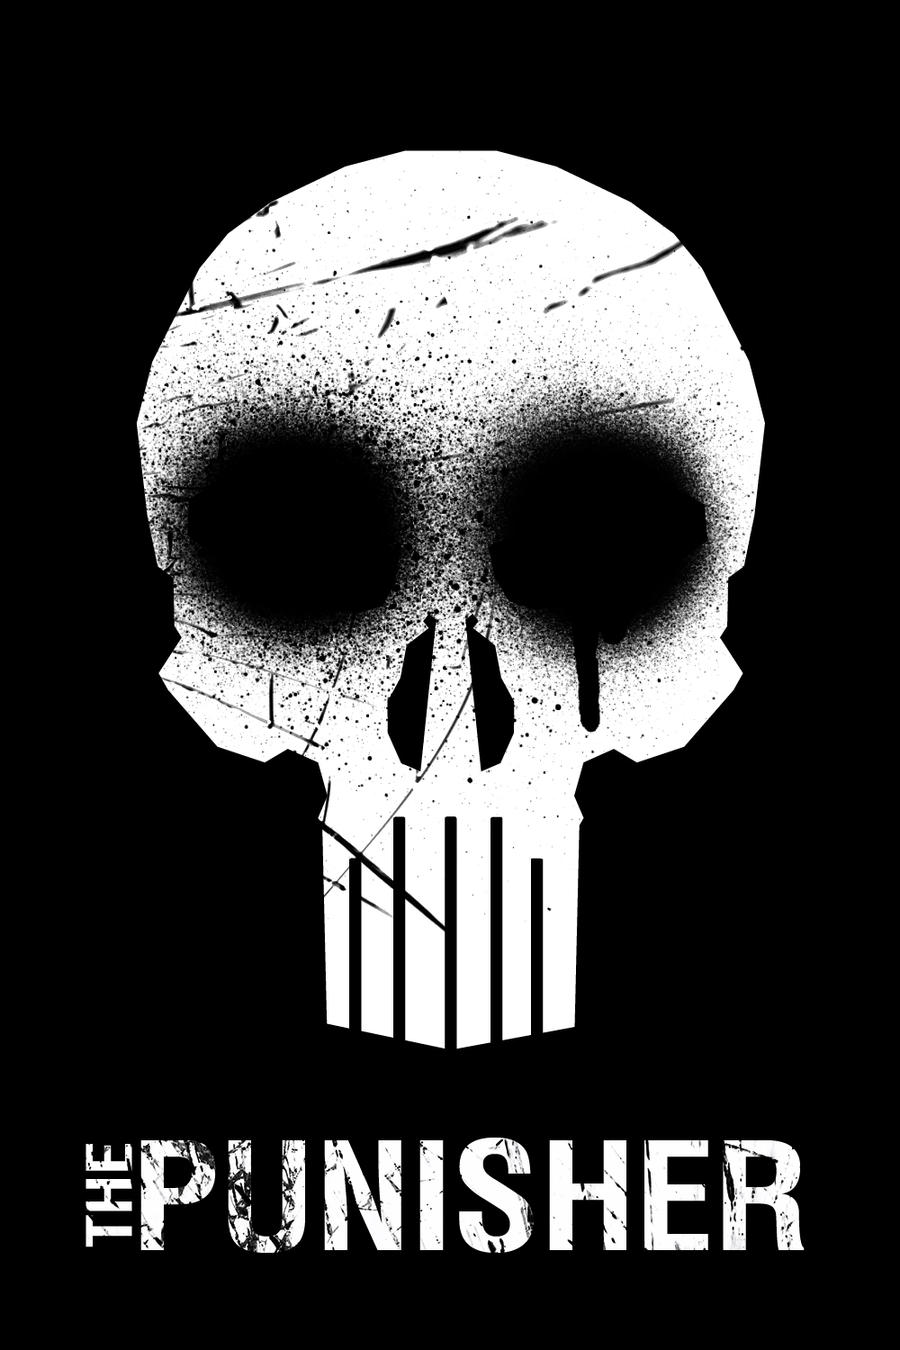 the_punisher_logo_by_kanombravo-d58bf79.jpg